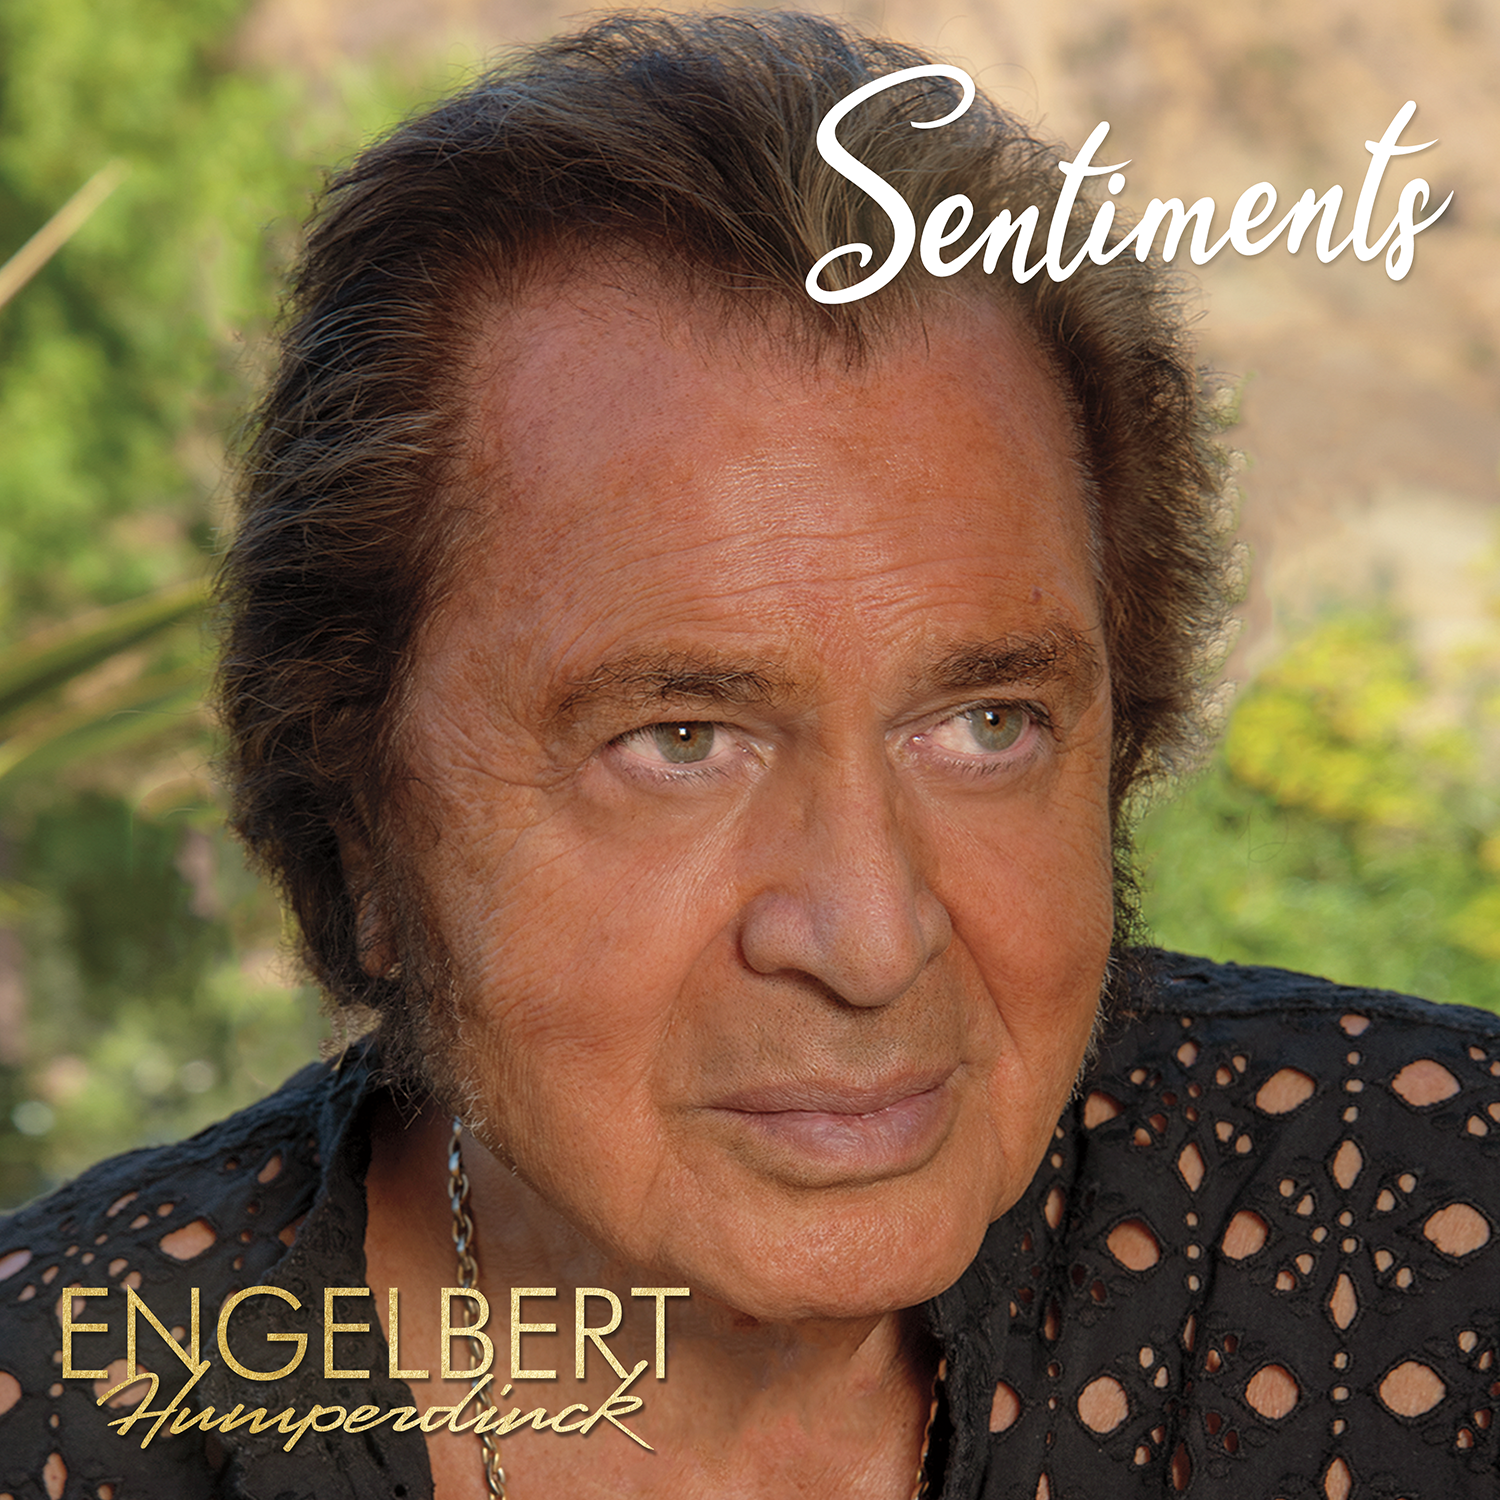 Engelbert Humperdinck - Sentiments - Cover Art